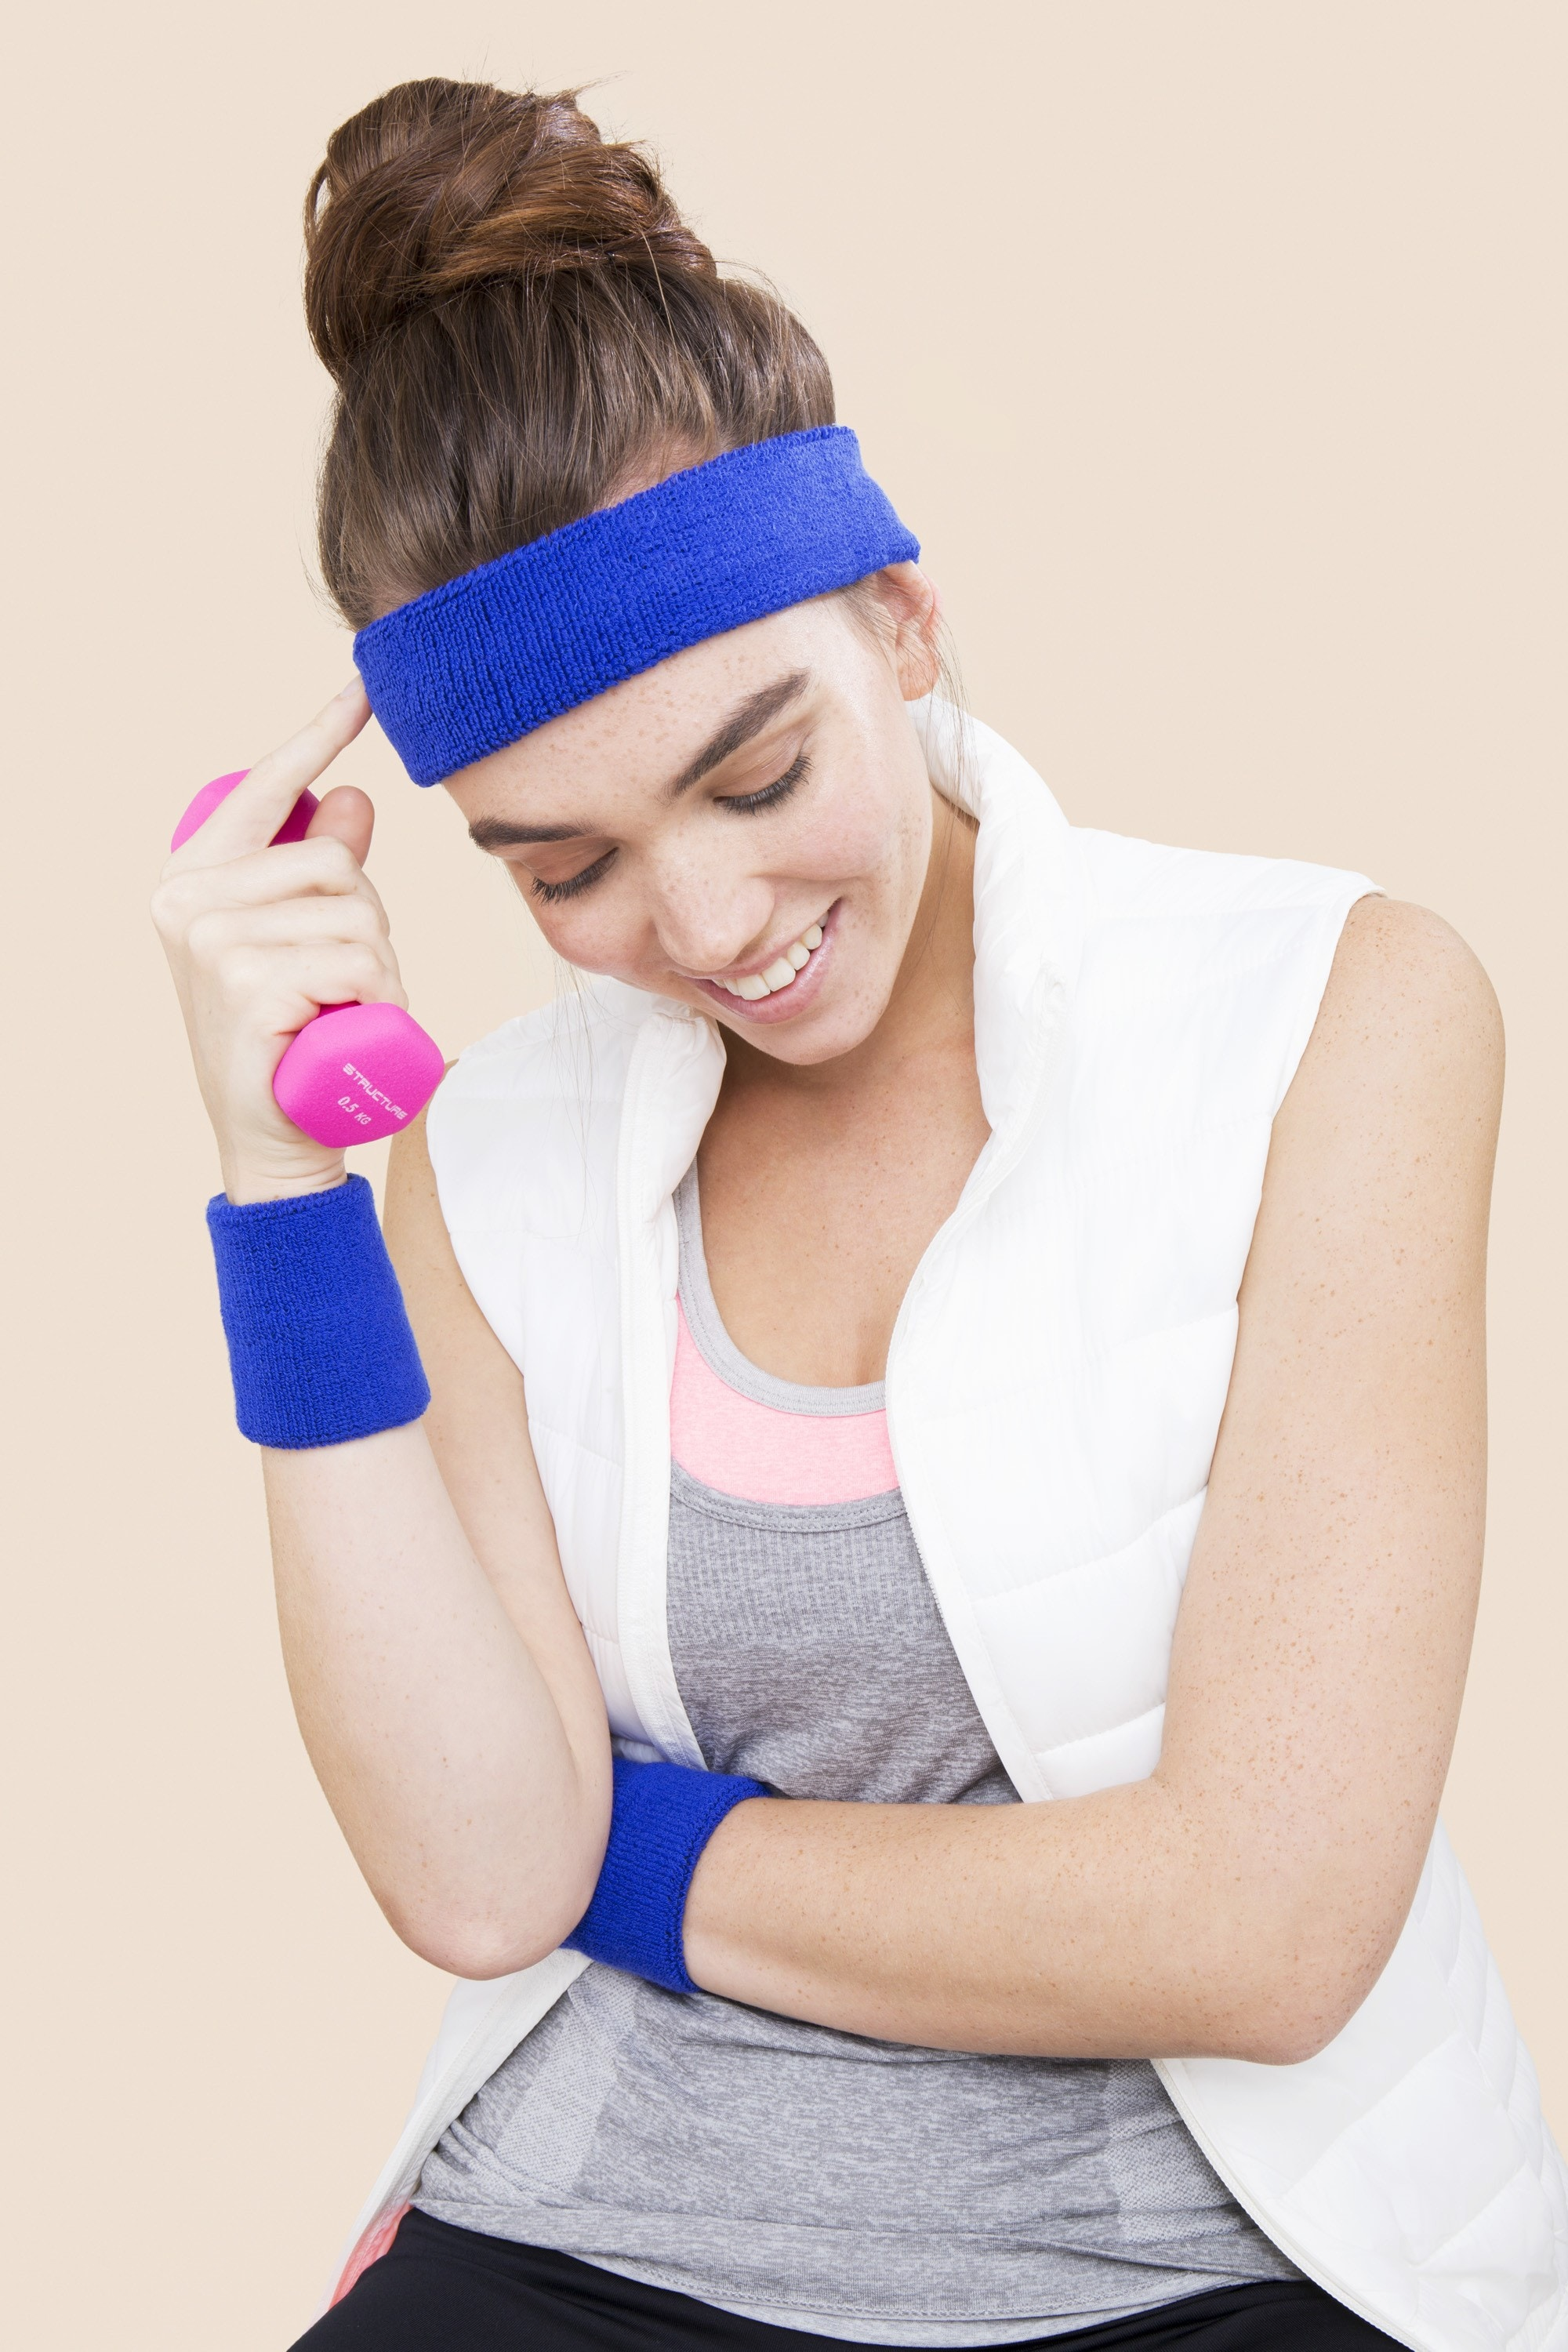 close up shot of model in the studio with topknot hairstyle, wearing gym clothing and holding weights